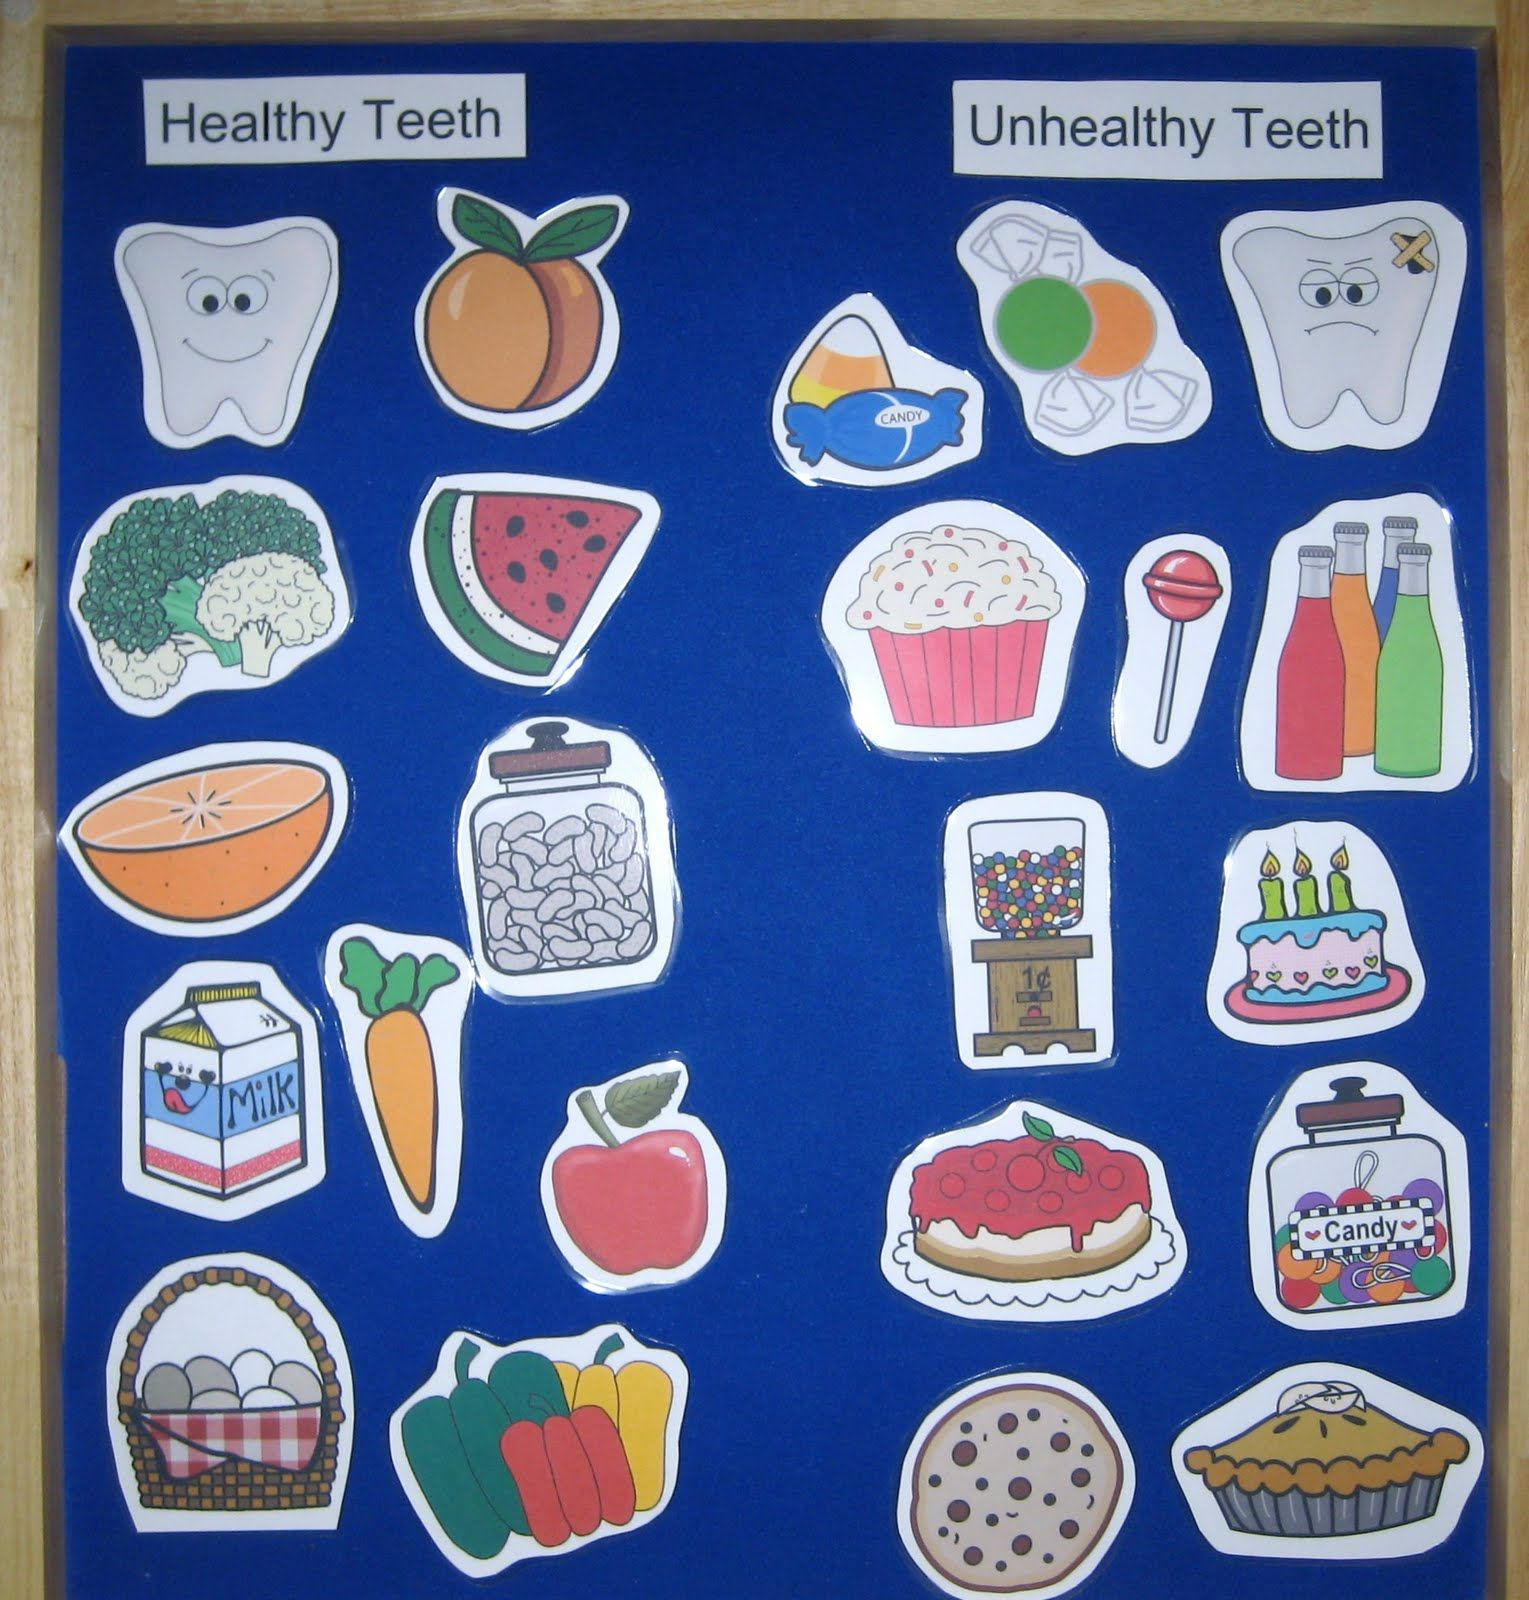 Healthy food vs unhealthy students can draw picture or use junk mail to show that will and not damage teeth the paragraph should explain also rh pinterest